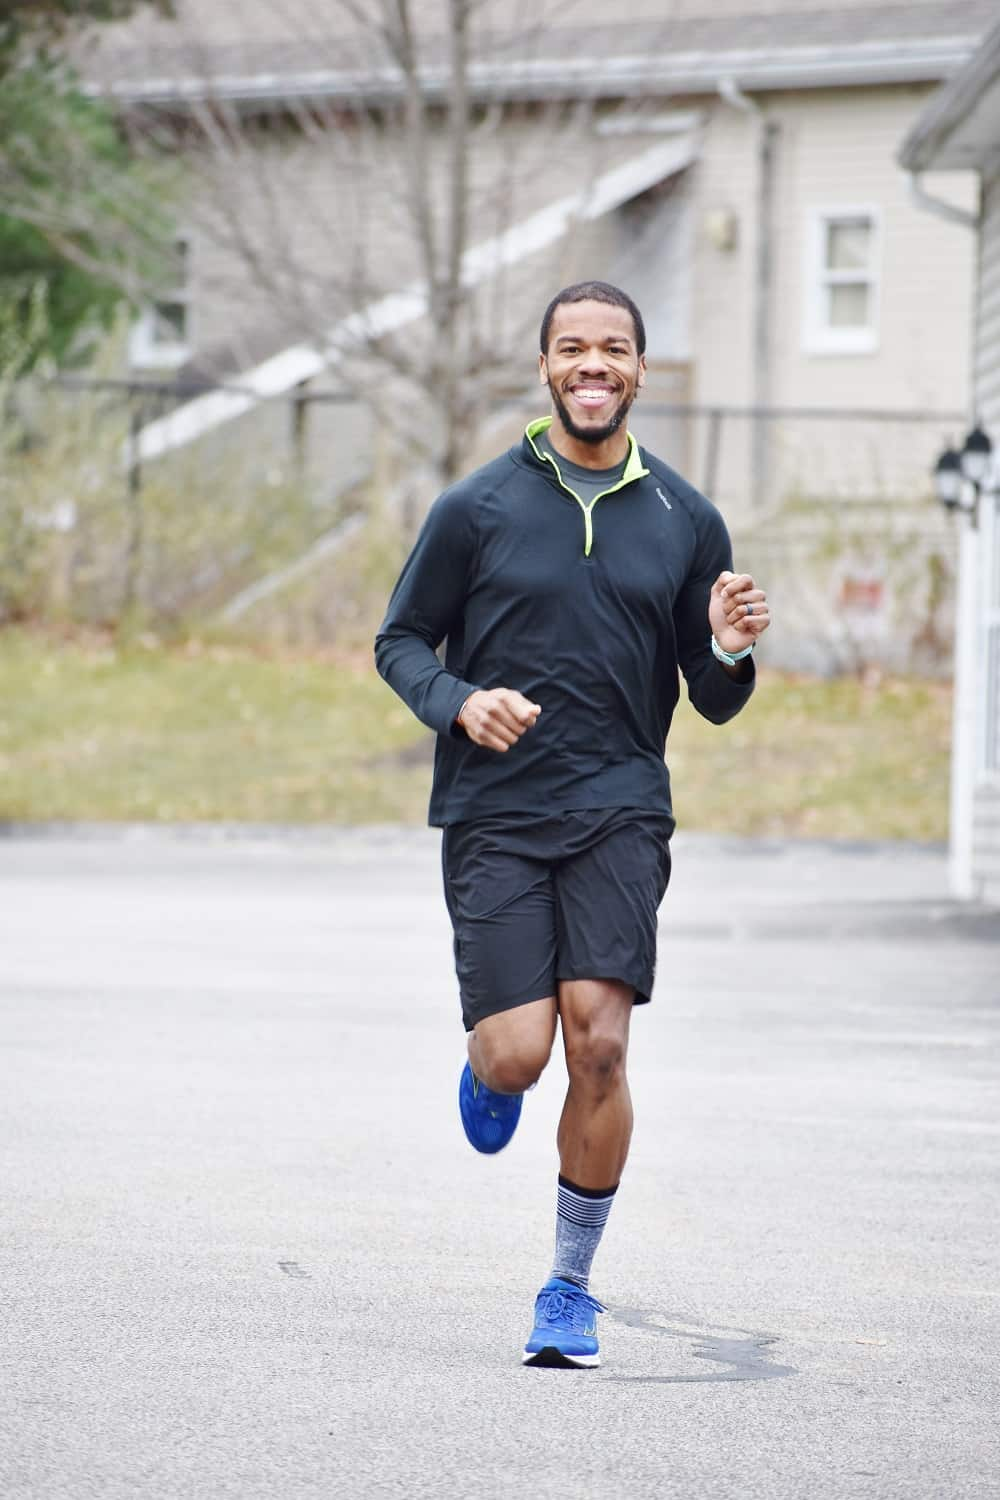 Try running slower to run faster! By slowing down many of your runs, you are able to put in more miles injury-free as well as feel fresh and powerful for the occasional speed work.